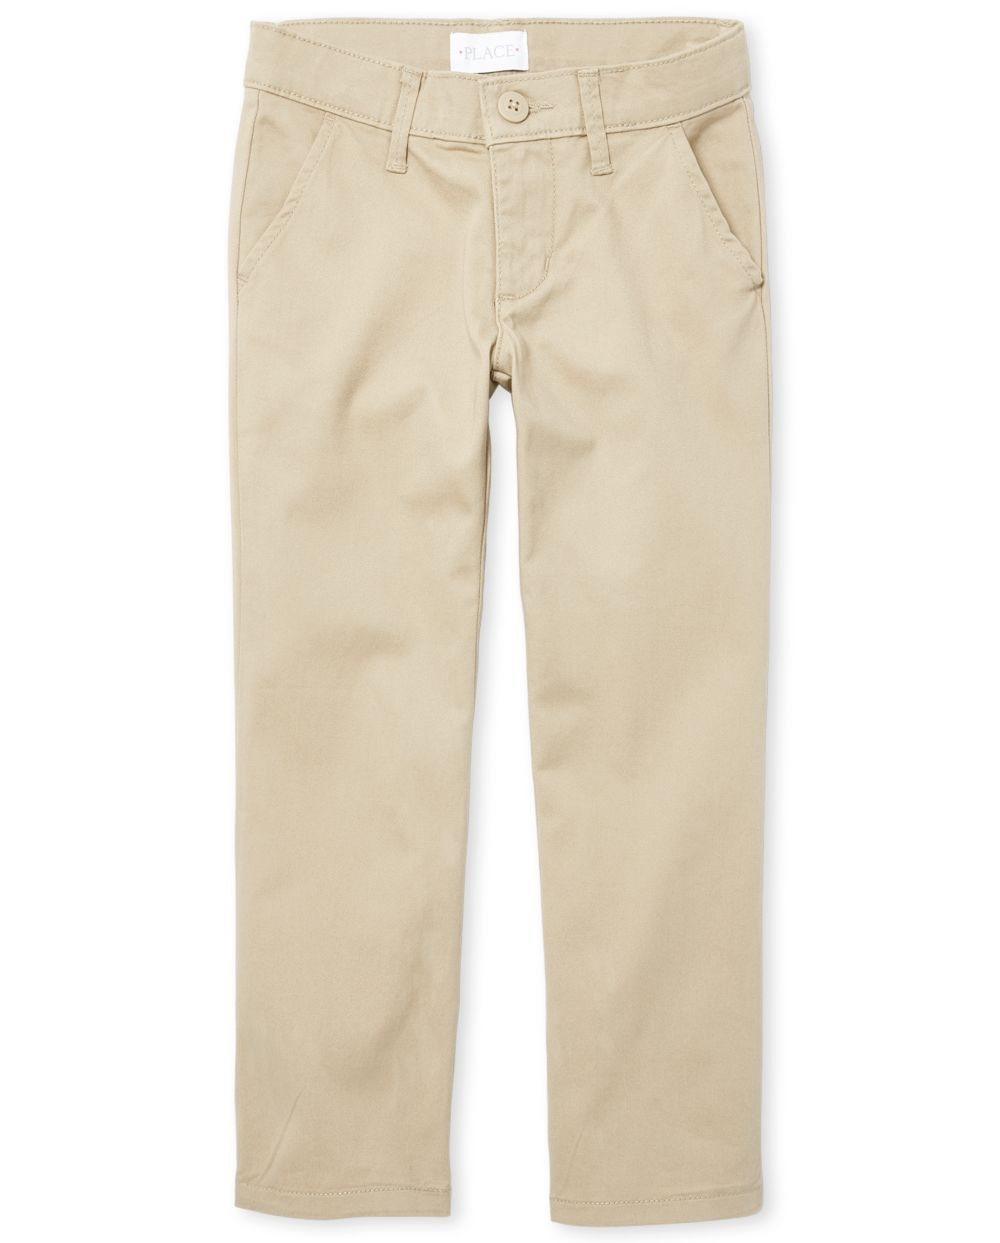 Girls Uniform Bootcut Chino Pants